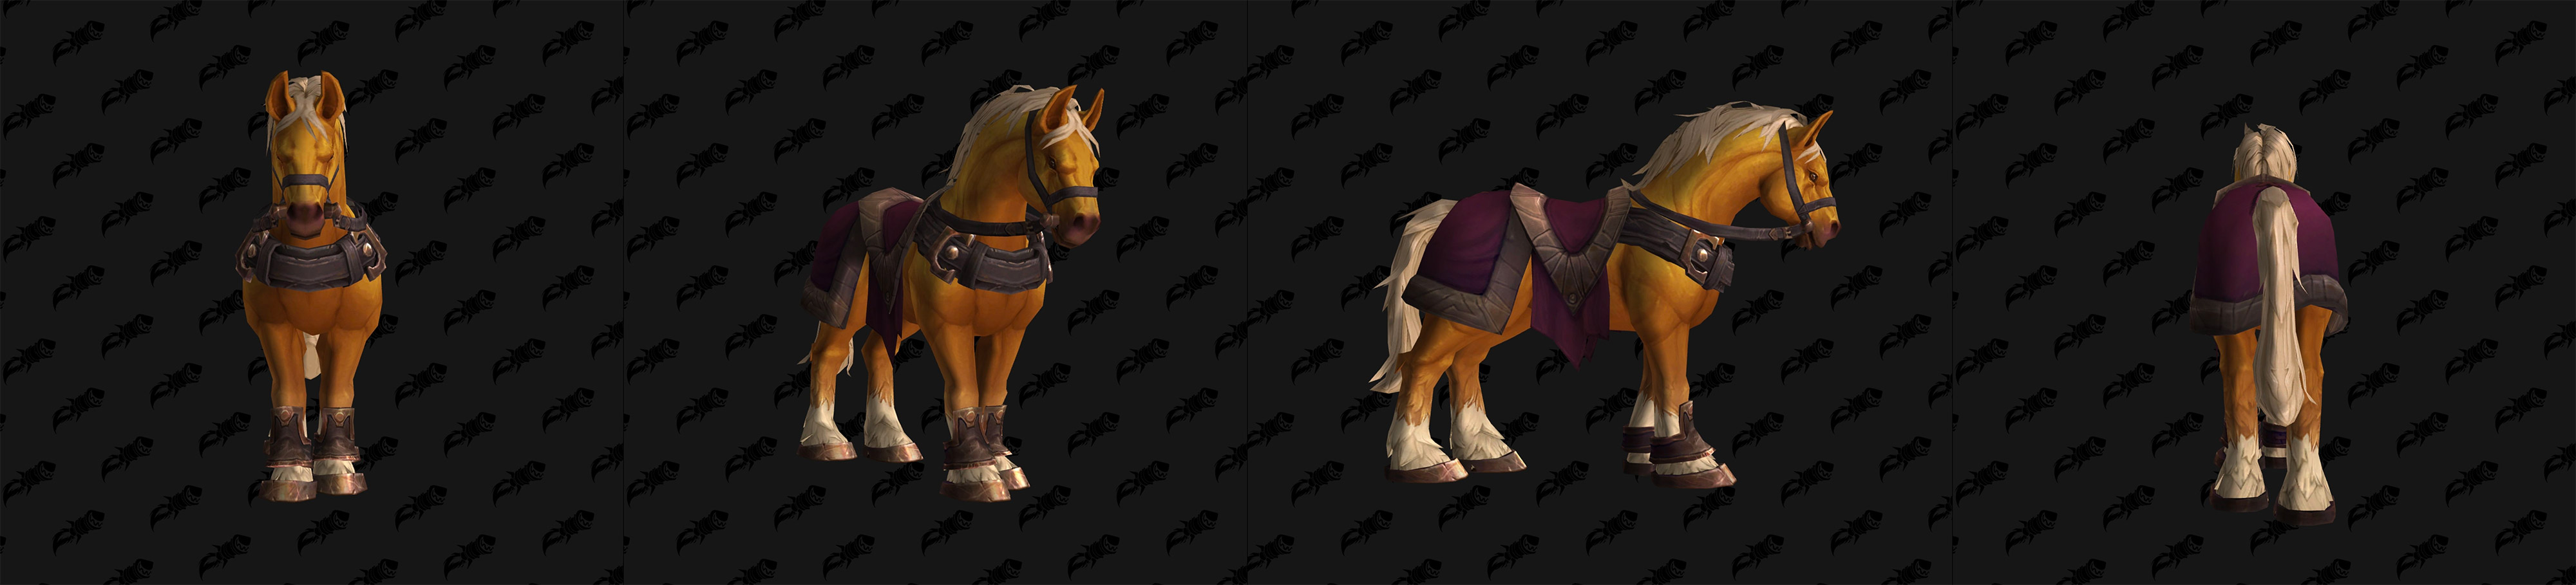 Monture Cheval de Goldmane - Chantorage